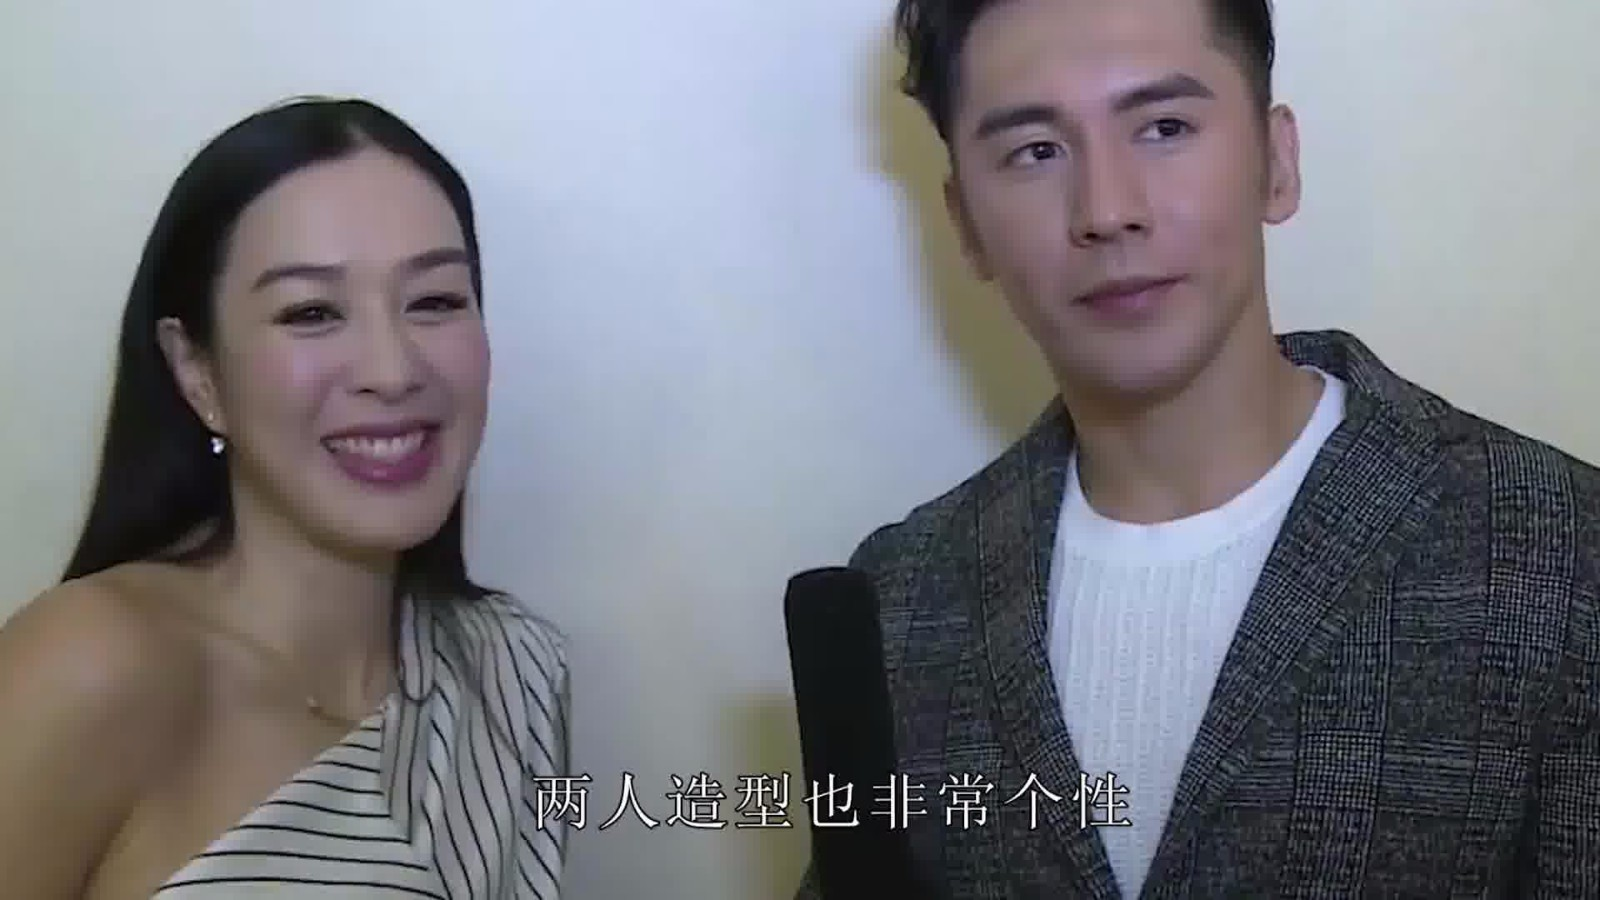 Christy Chung, a family with a large package of children, koala is sweet and lovely, but the two daughter has attracted a heated discussion.